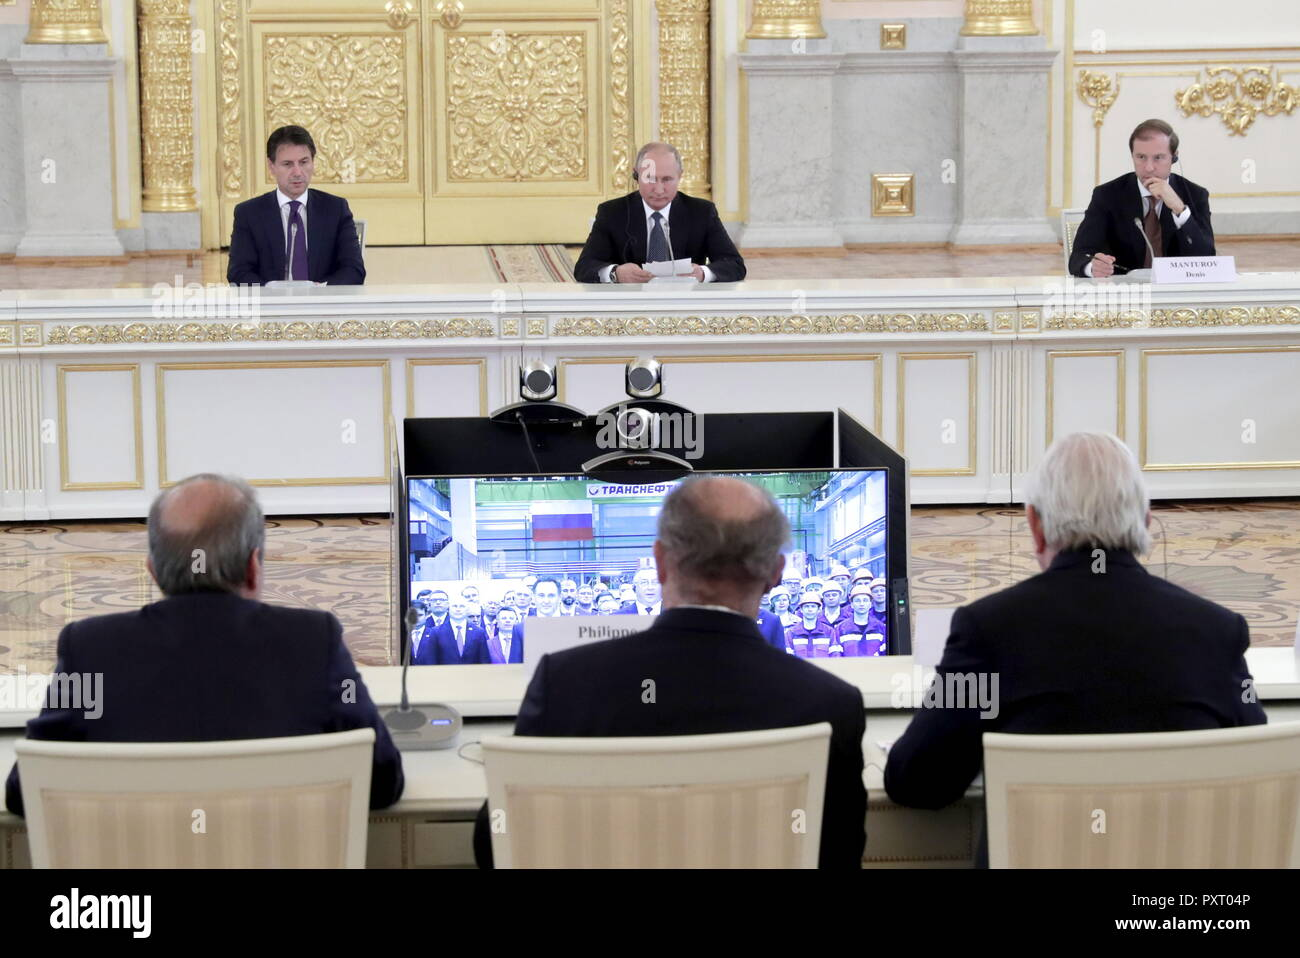 MOSCOW, RUSSIA - OCTOBER 24, 2018: The Prime Minister of Italy Giuseppe Conte, the President of Russia Vladimir Putin, and Russia's Minister of Industry and Trade Denis Manturov (L-R back) at a meeting of senior Russian and Italian government officials and members of Russia's and Italy's business community in the Alexander Hall of the Kremlin; those attending the meeting took part in the inauguration ceremony of a plant of the Russian Electric Motors (REM) company via a videoconference link between Moscow and Chelyabinsk. Mikhail Metzel/TASS - Stock Image